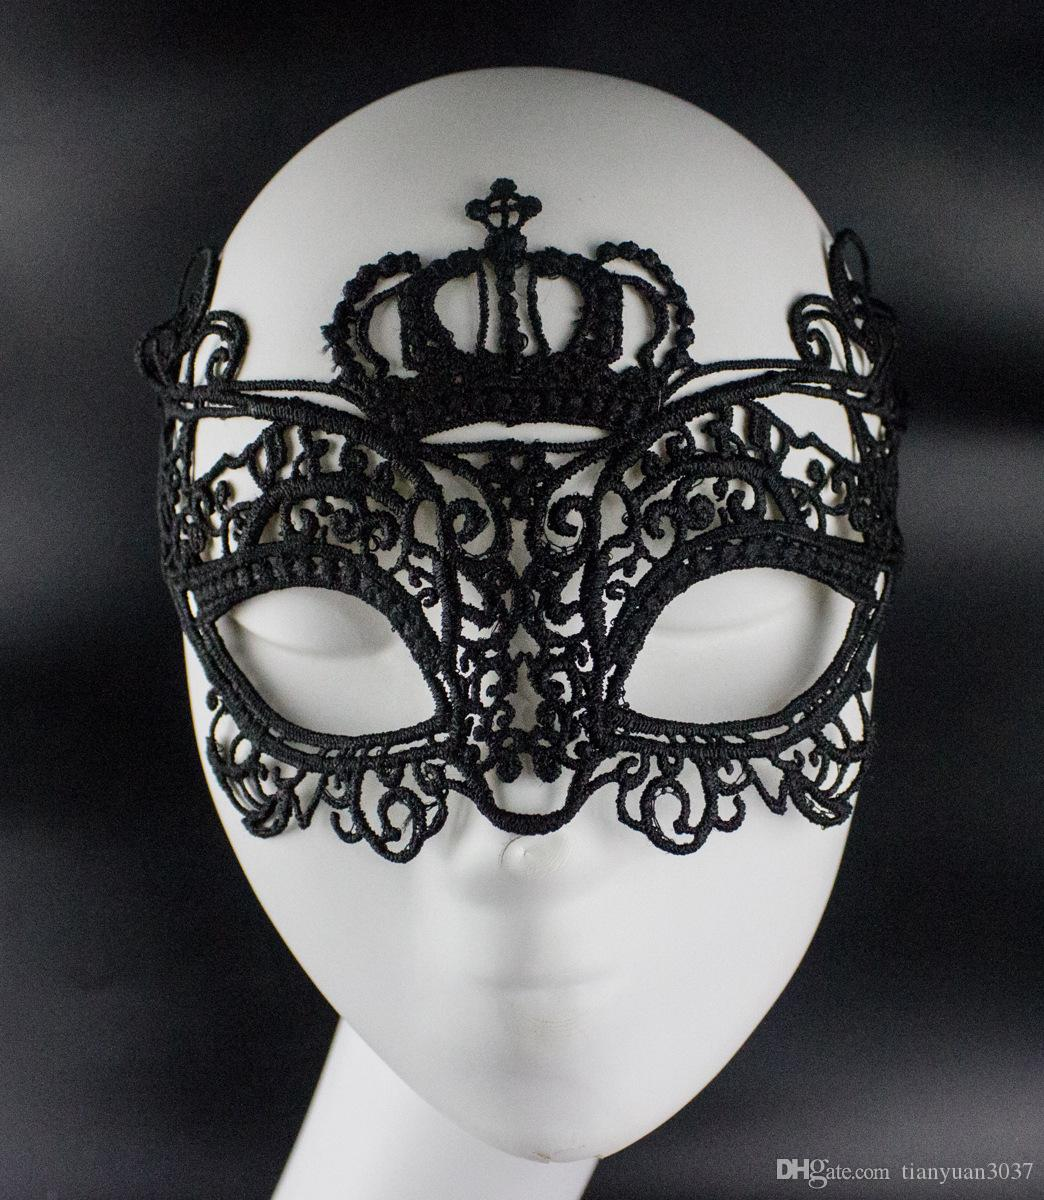 black sexy fancy gothic style lace mask women dress costume crown pattern cutout eye mask for masquerade party Halloween mask TY939